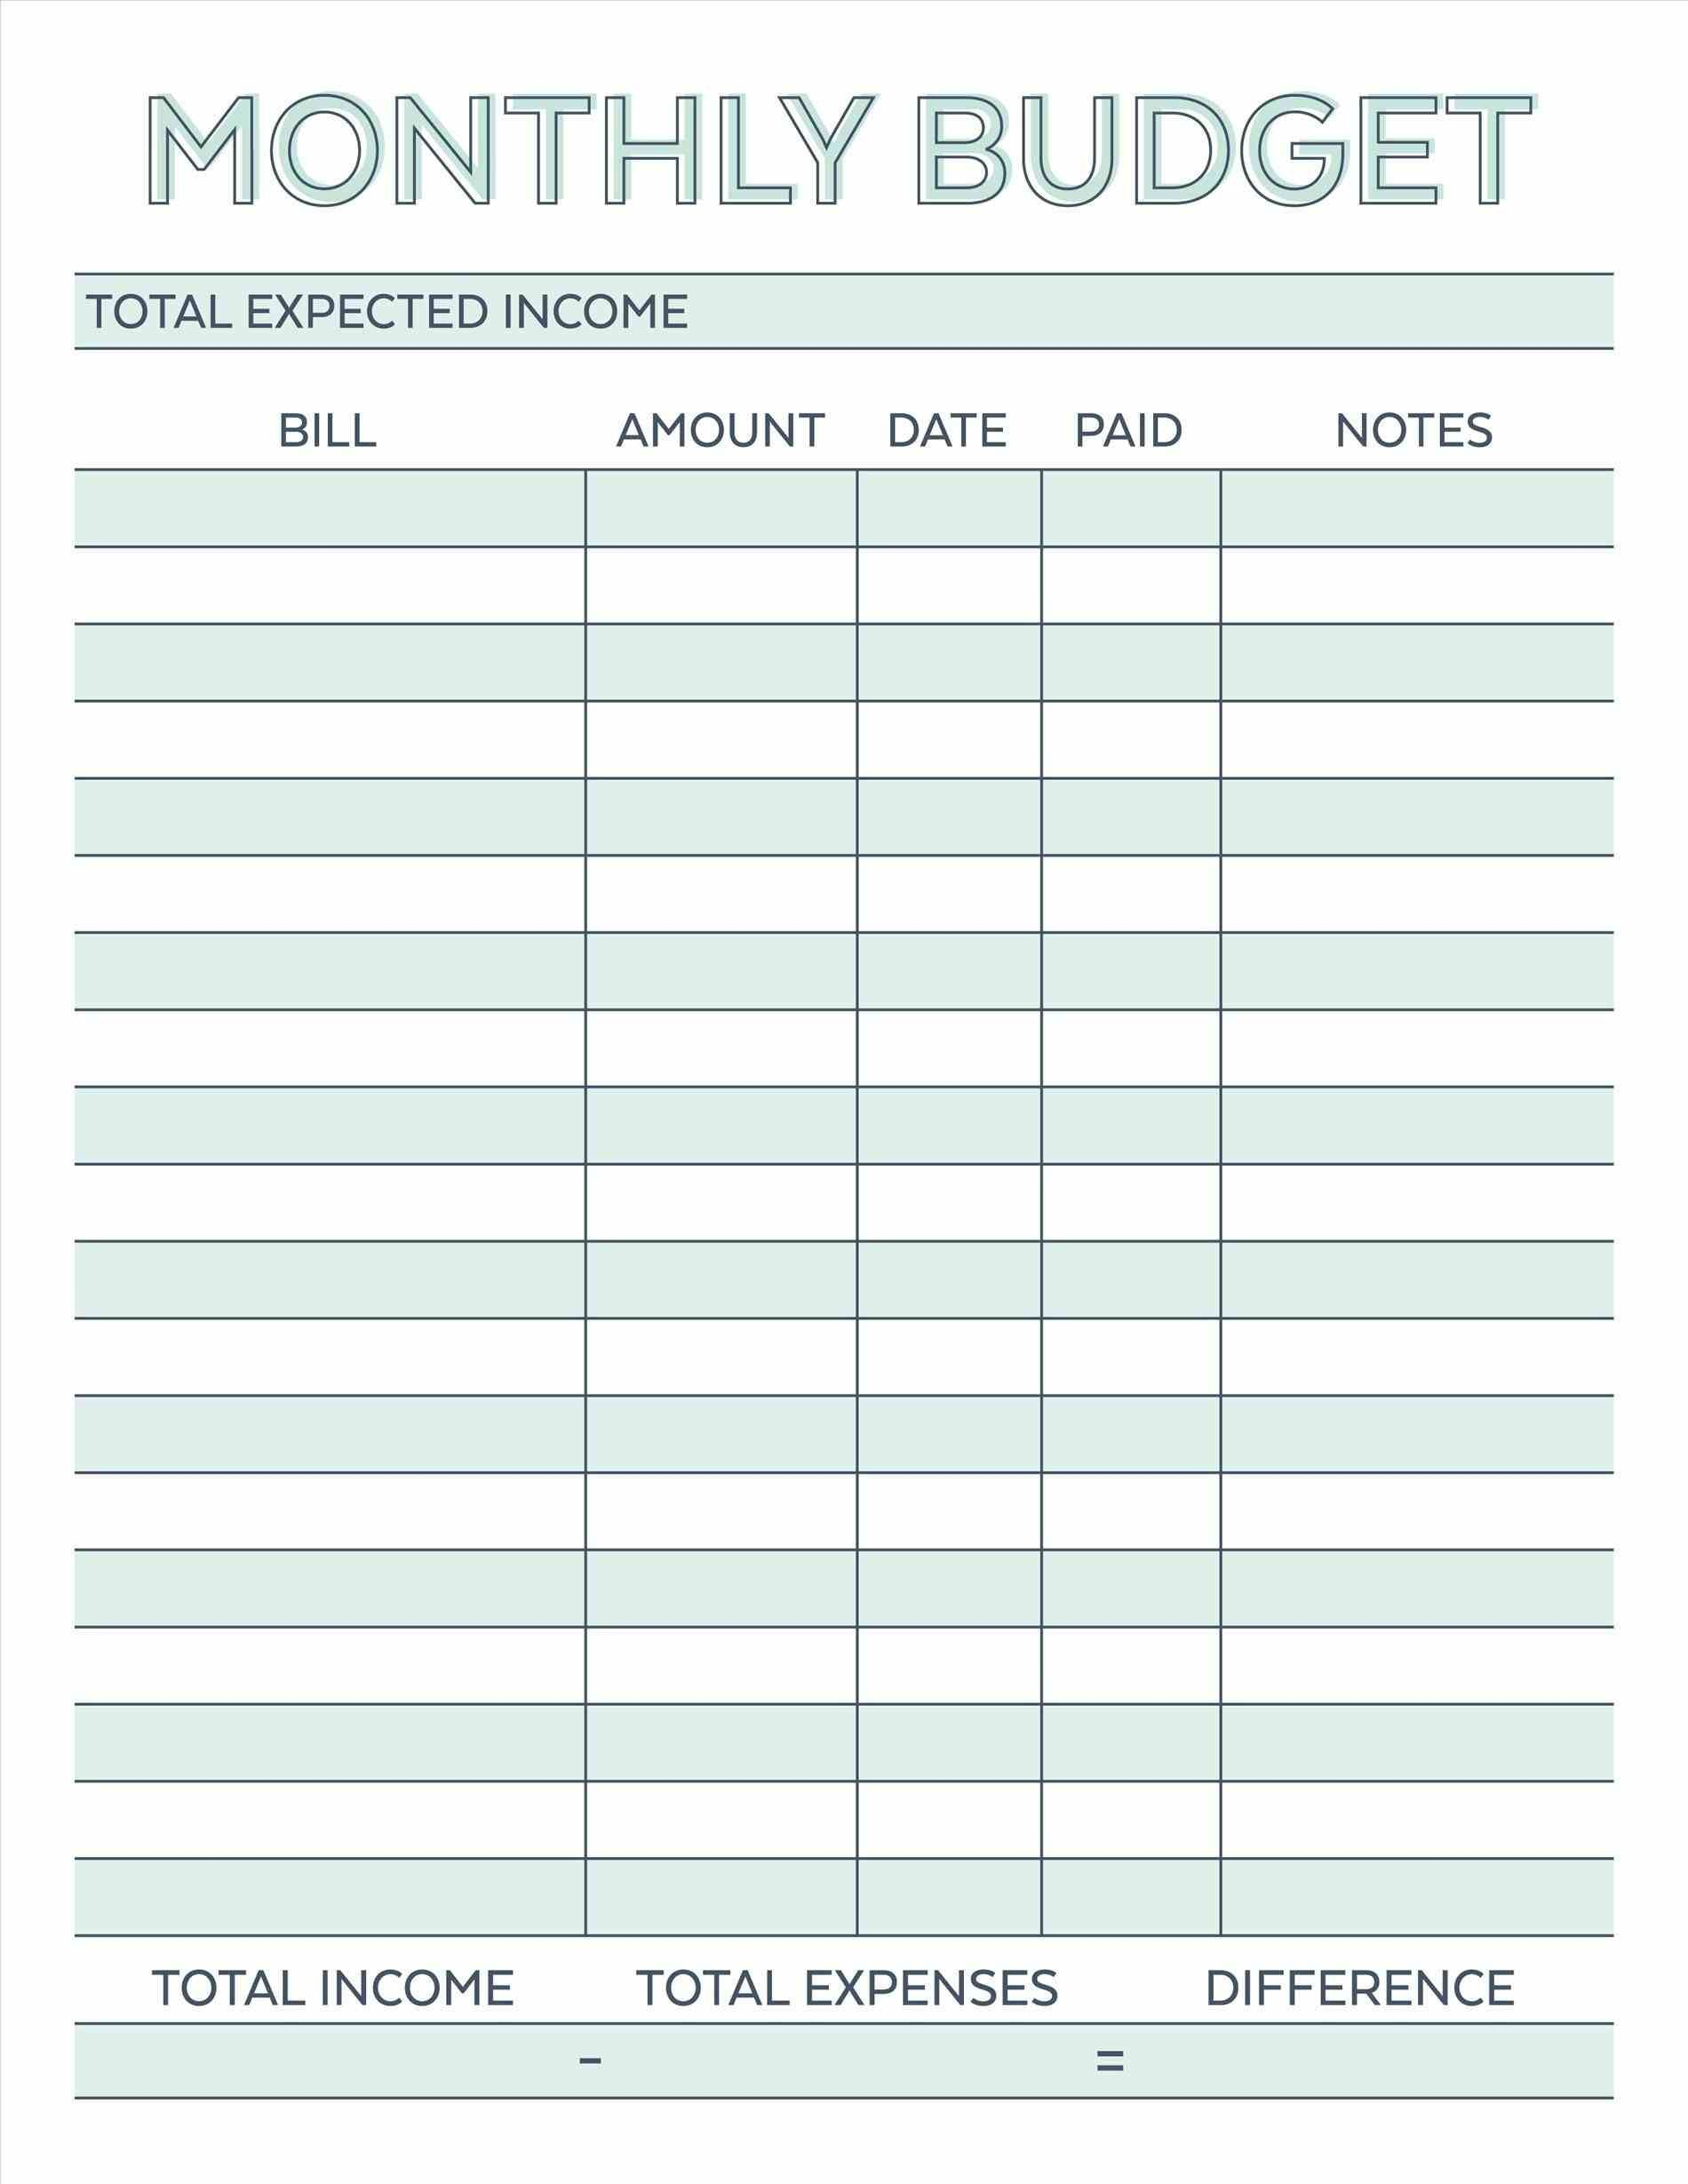 Budget Planner Planner Worksheet Monthly Bills Template Free | Free Printable Home Budget Worksheet